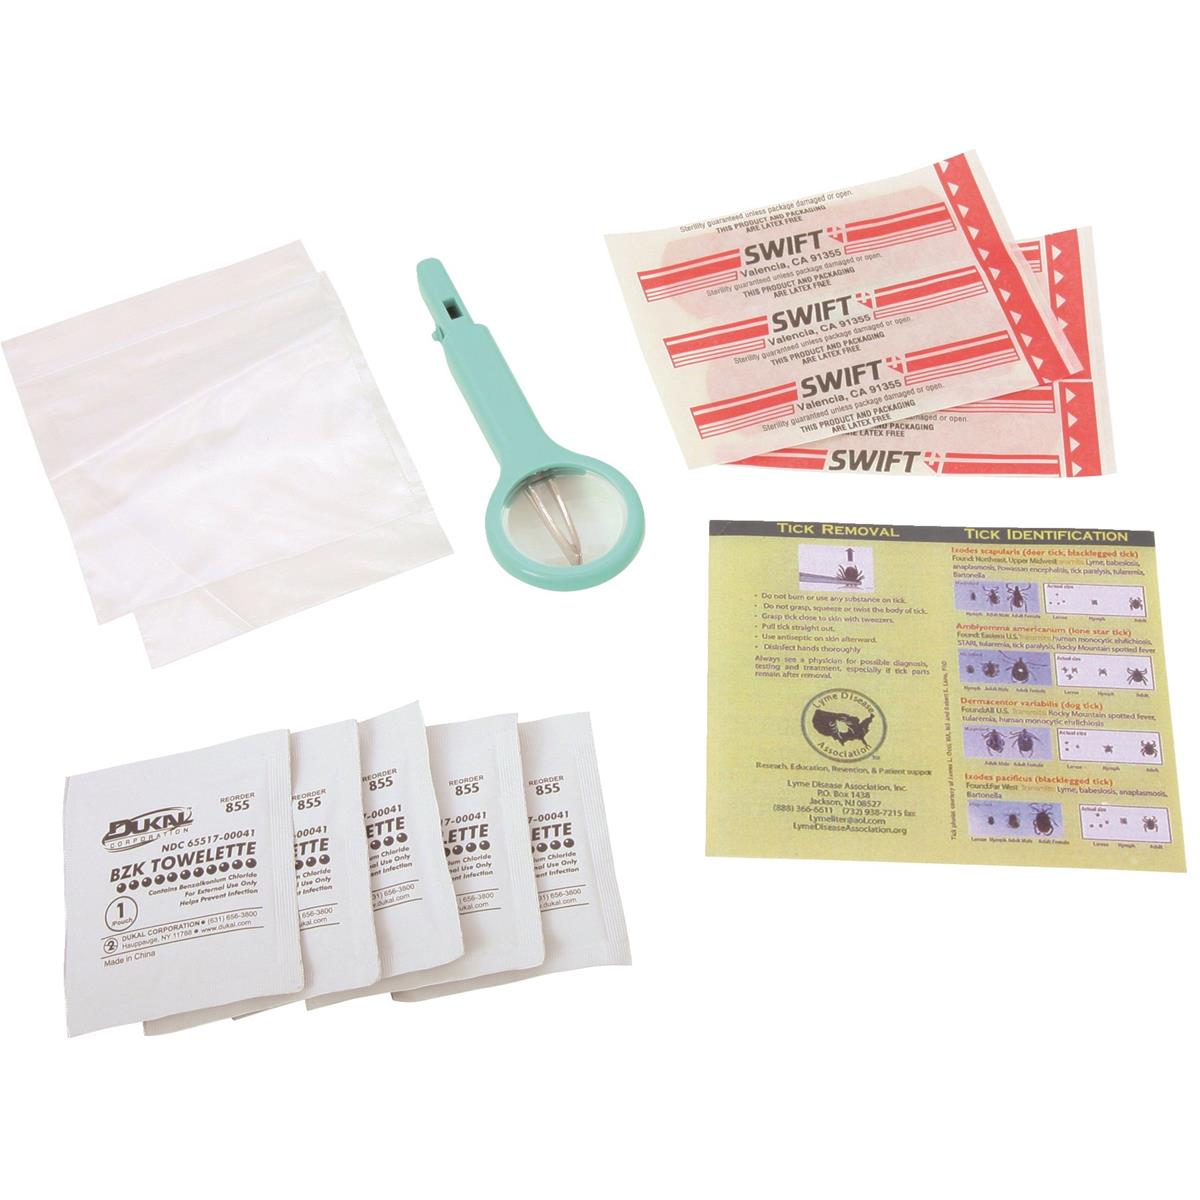 North® Tick Removal Kit